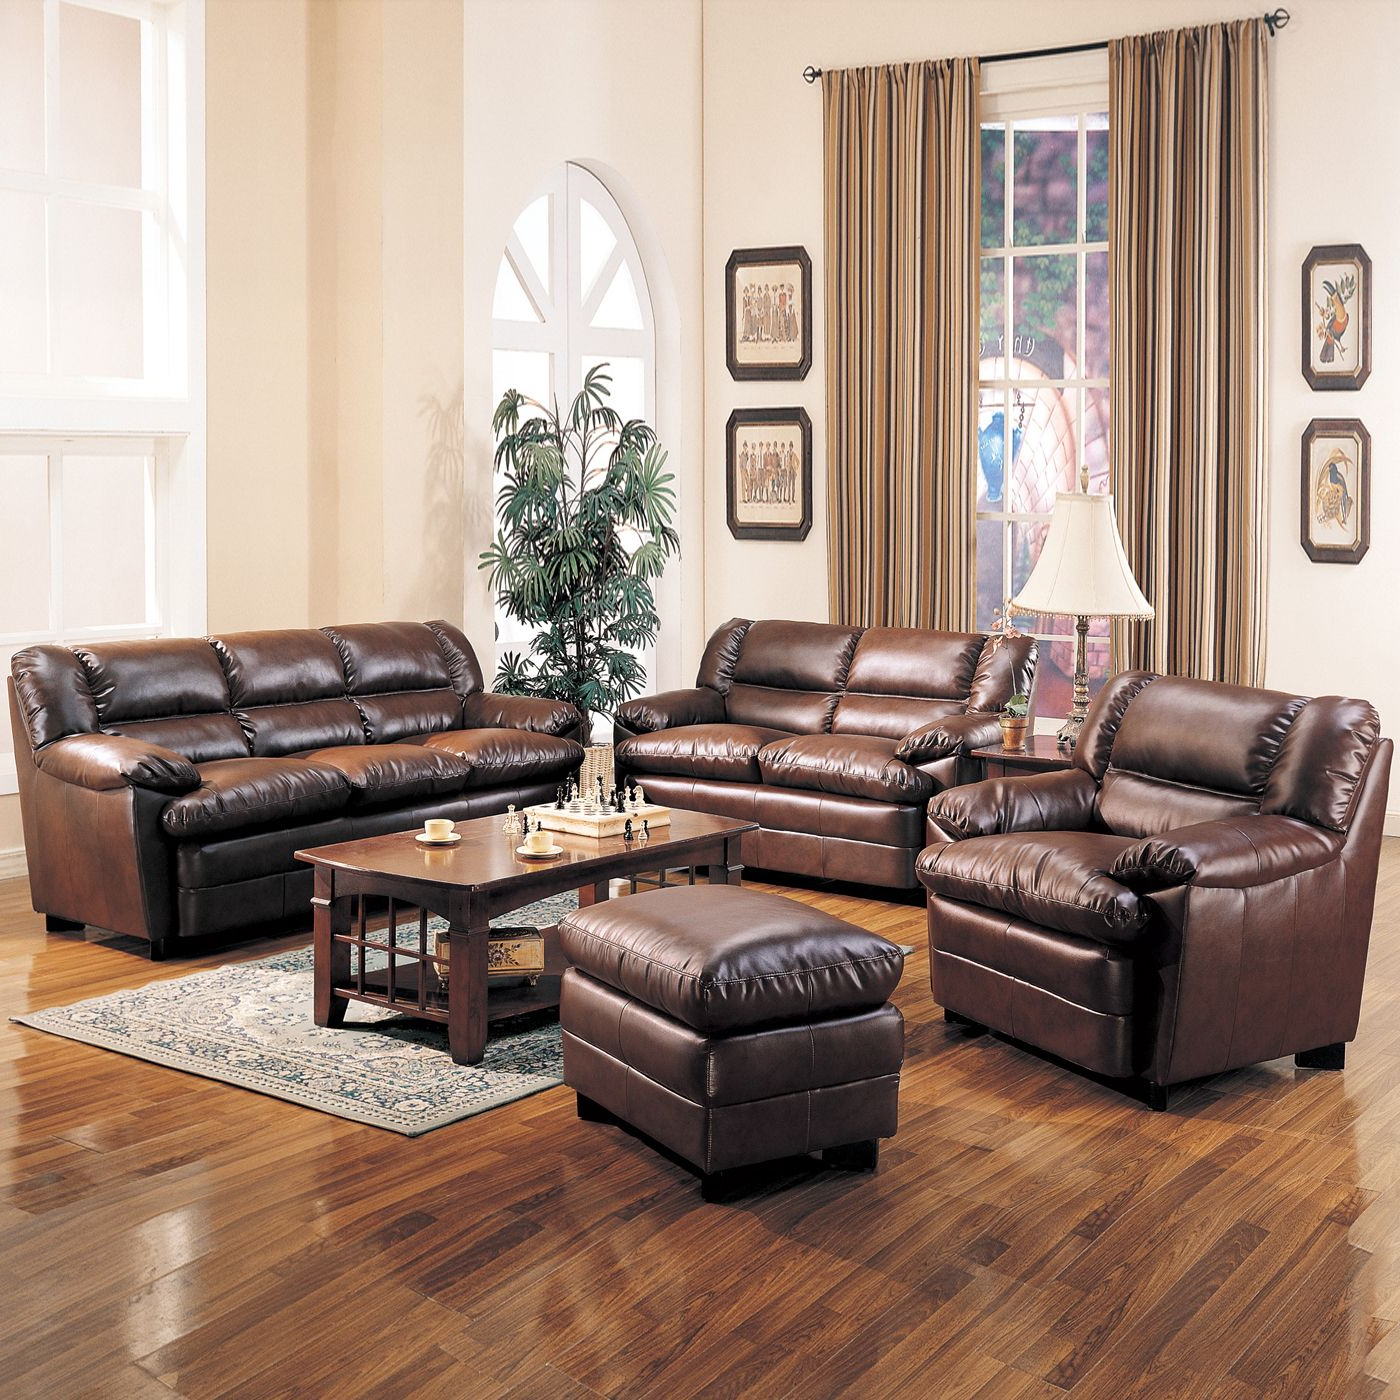 Most Up To Date Cream Living Room Sets: Vintage Living Room Set Up With Dark Brown Pertaining To Declan 3 Piece Power Reclining Sectionals With Right Facing Console Loveseat (View 9 of 20)